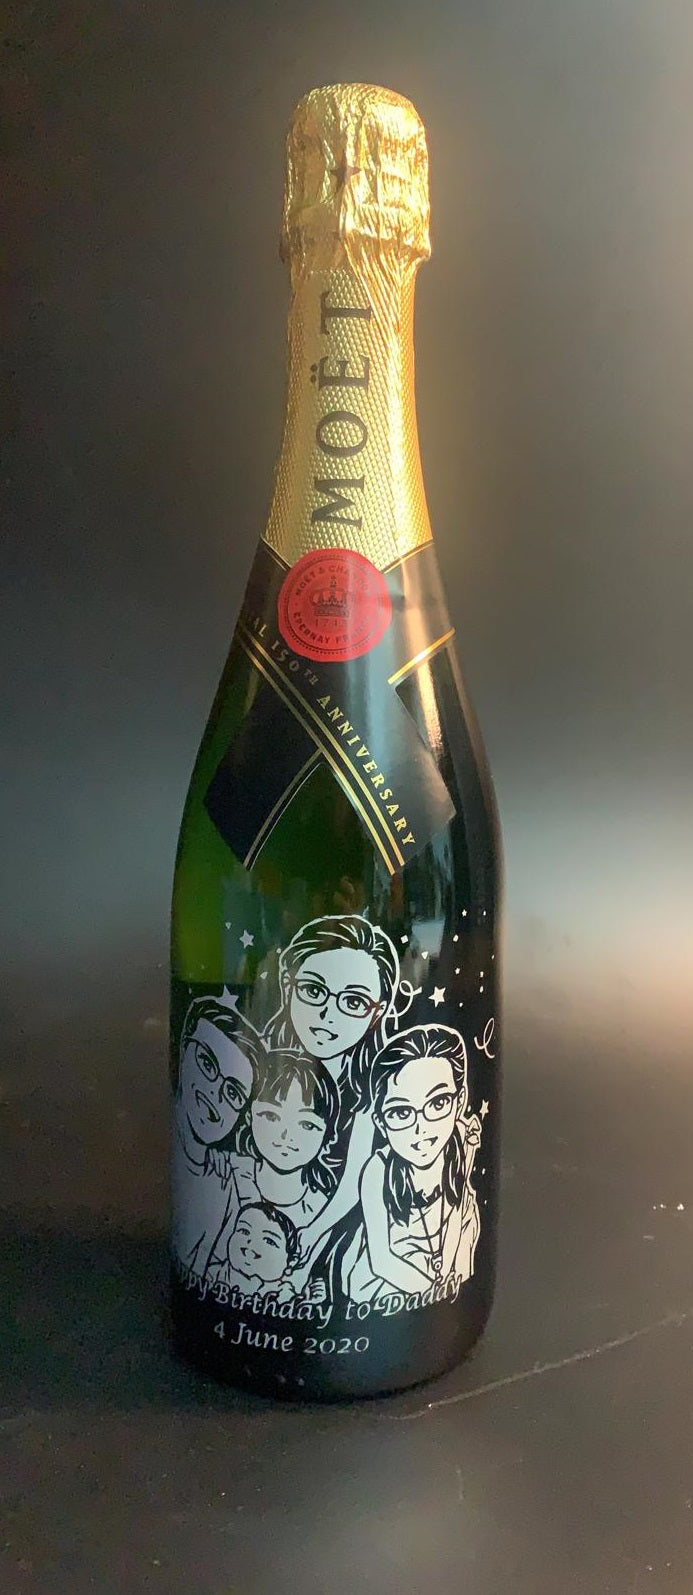 Cute Cartoon Style Cartoon Engraving | Personalize Champagne & Sparkling Wine - Design Your Own Wine